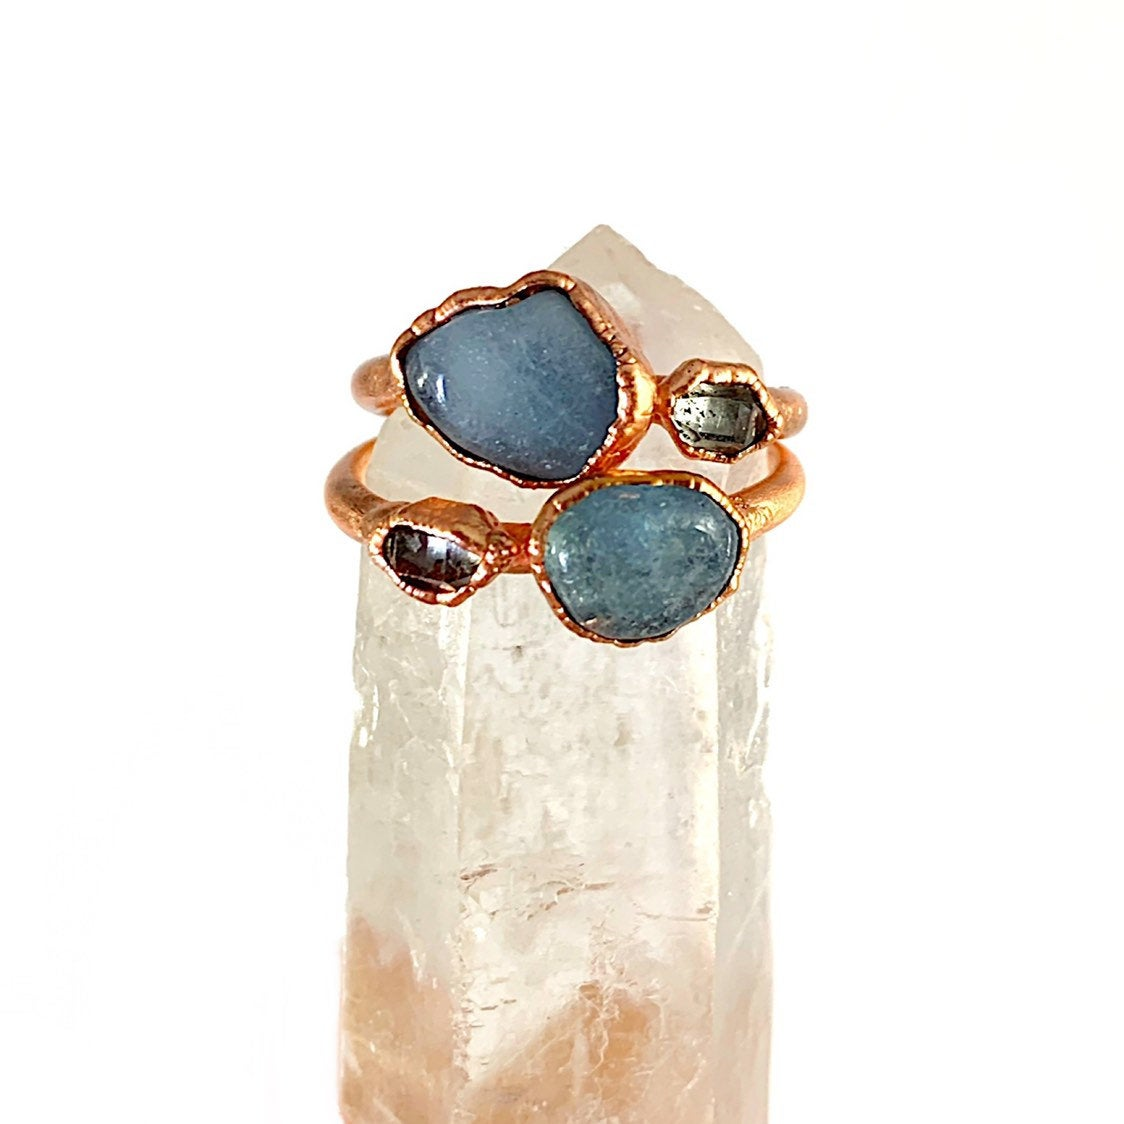 Aquamarine Ring and Herkimer Diamond Ring | March Birthstone